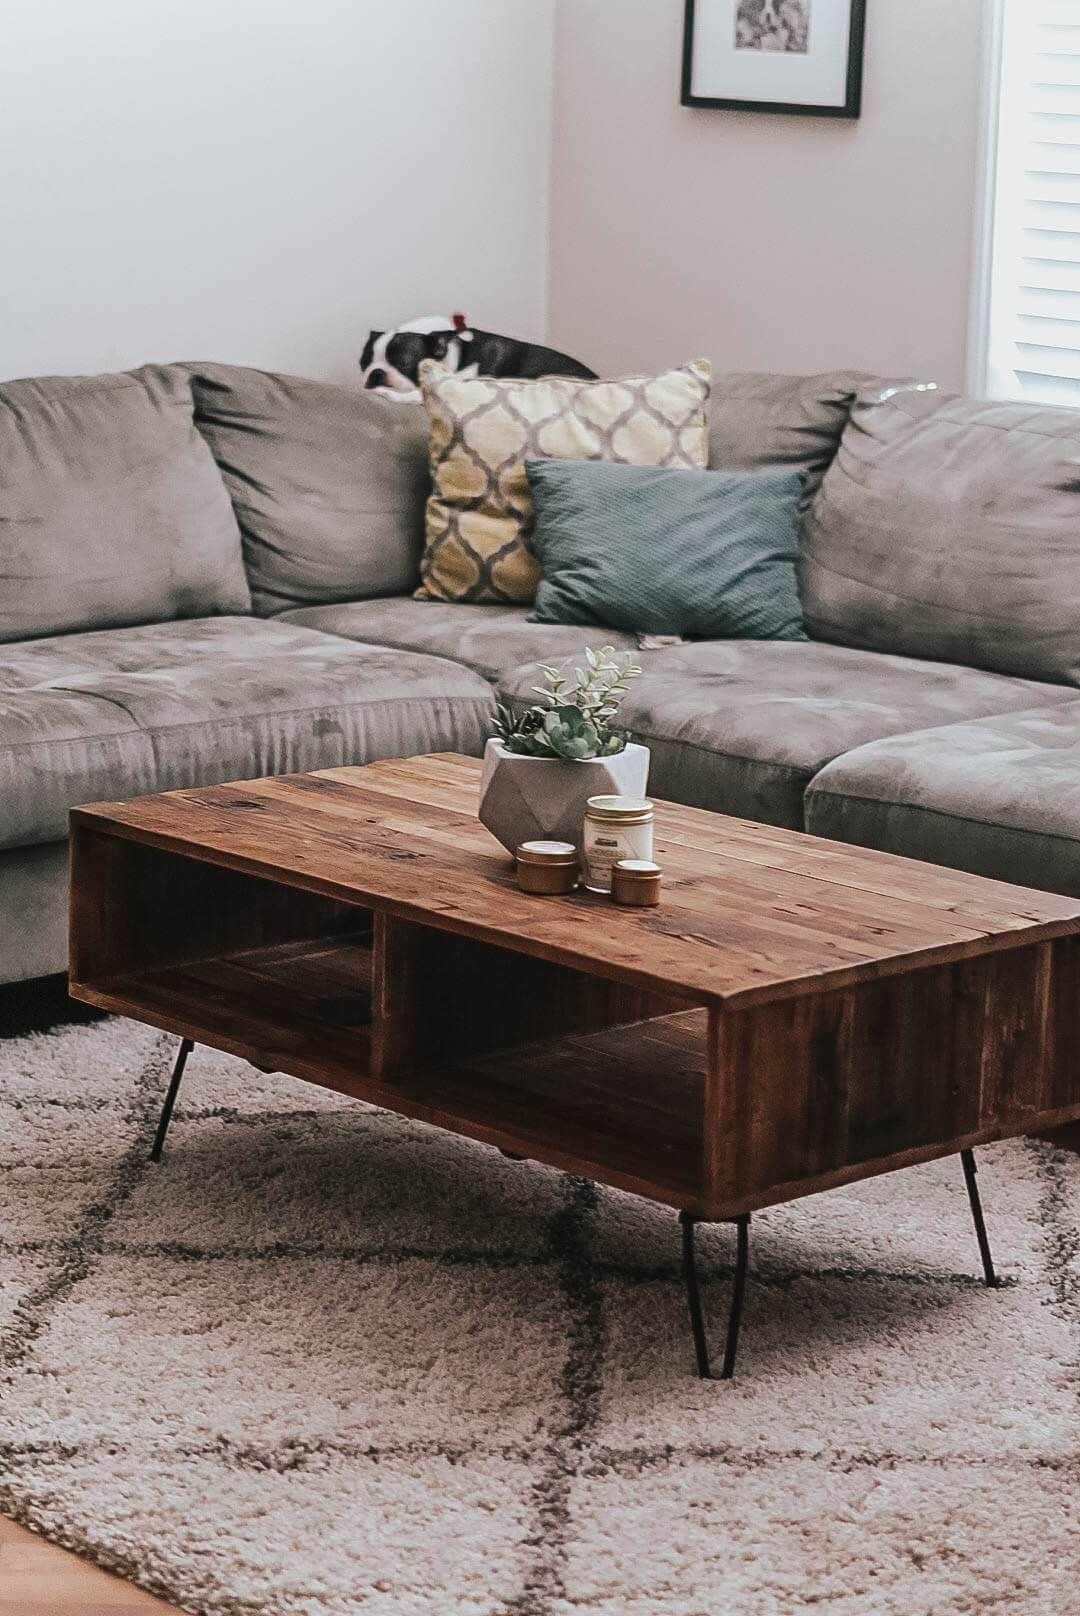 21 Rustic Living Room Furniture Ideas To Warm Up Your Home With